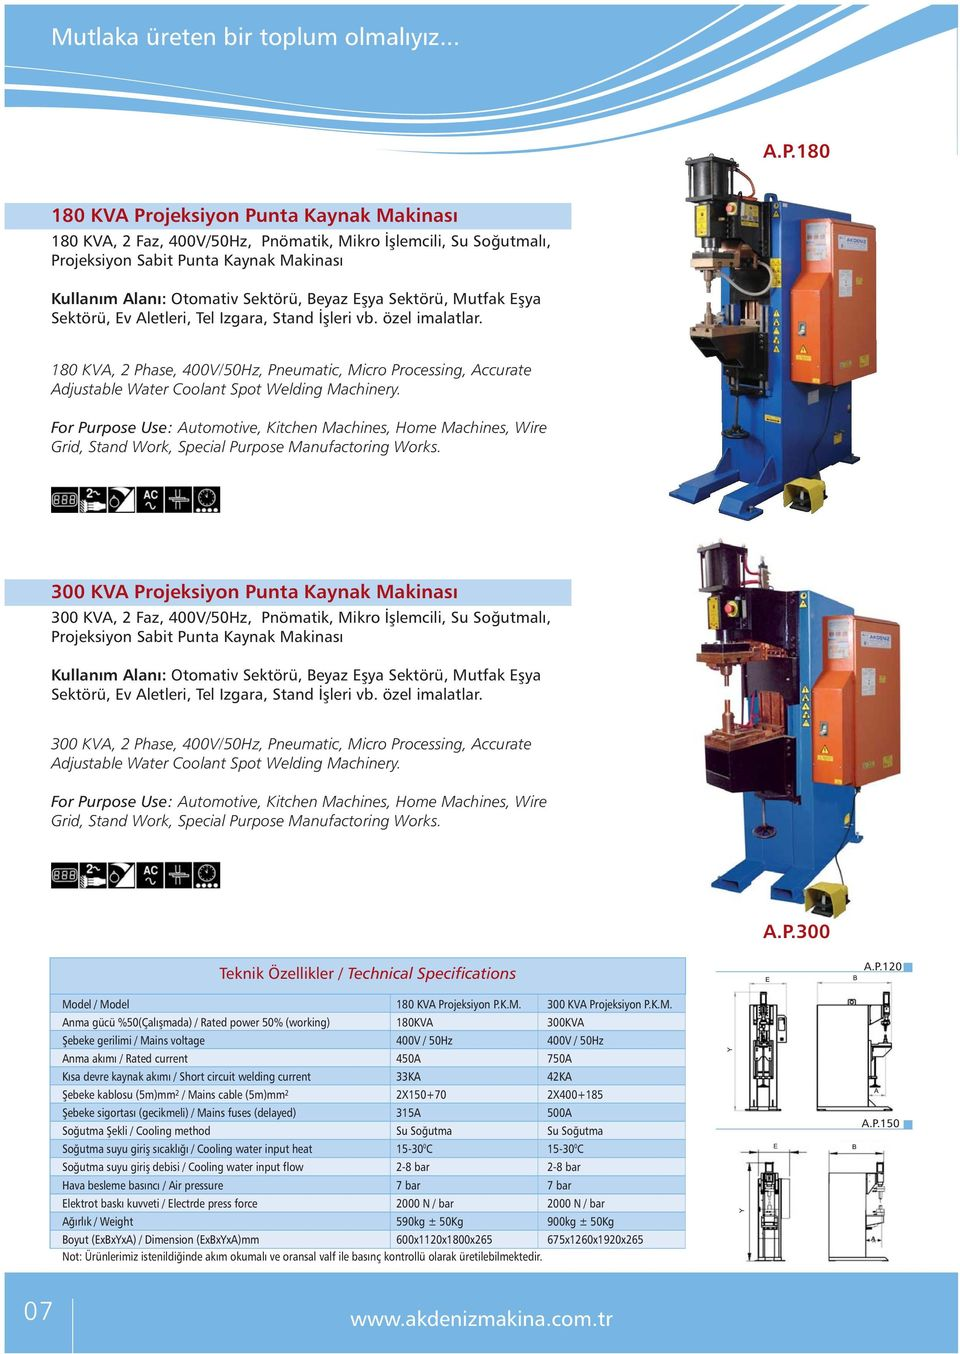 180 KVA, 2 Phase, 400V/50Hz, Pneumatic, Micro Processing, Accurate Adjustable Water Coolant Spot Welding Machinery. Grid, Stand Work, Special Purpose Manufactoring Works.